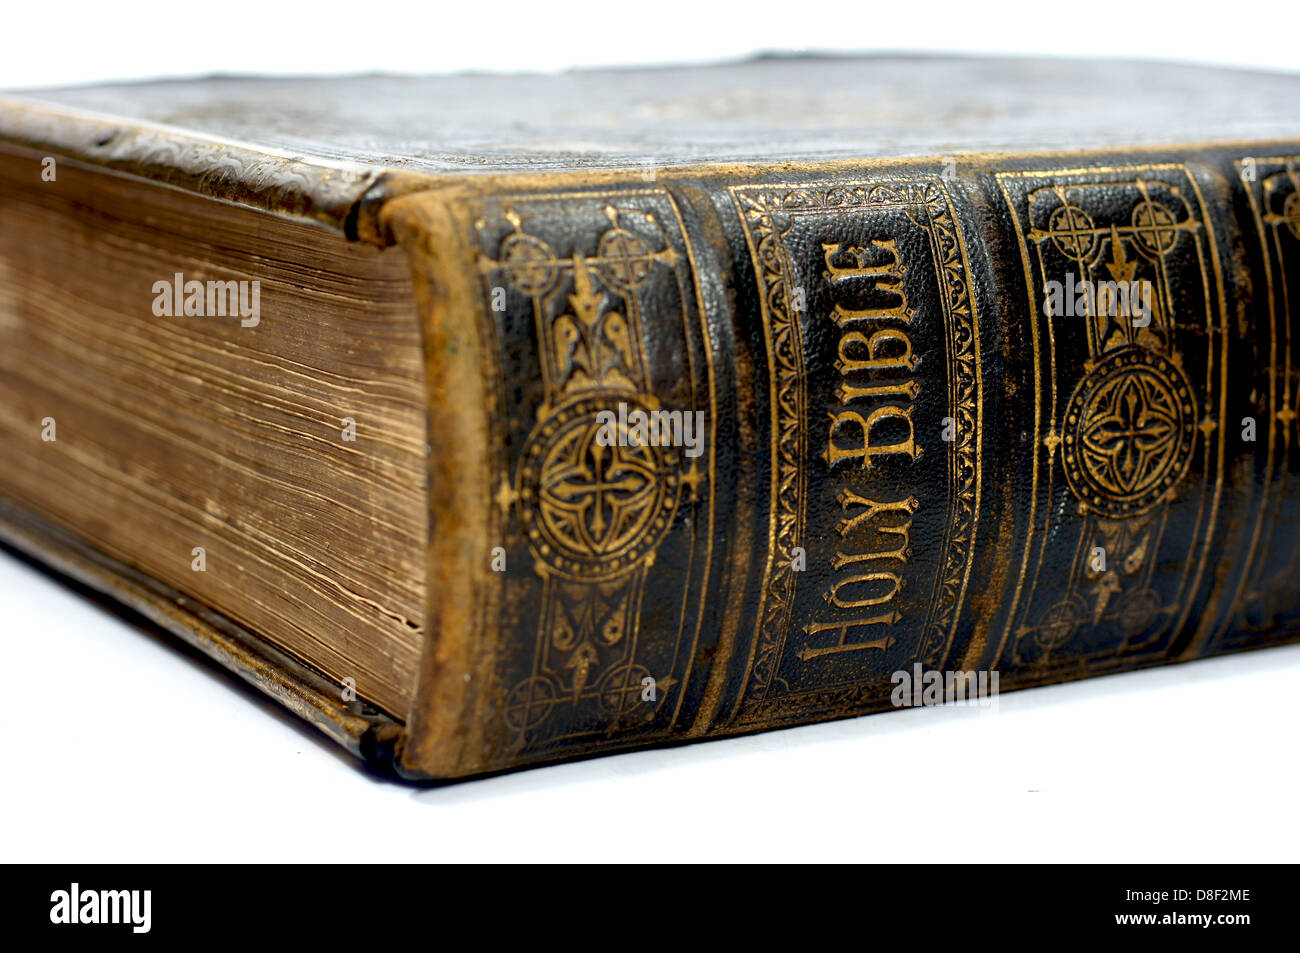 Vintage Leather Look Jeremiah Verse Bible Book Cover Large: Spine Of An Old Ancient Holy Bible Stock Photo: 56879774